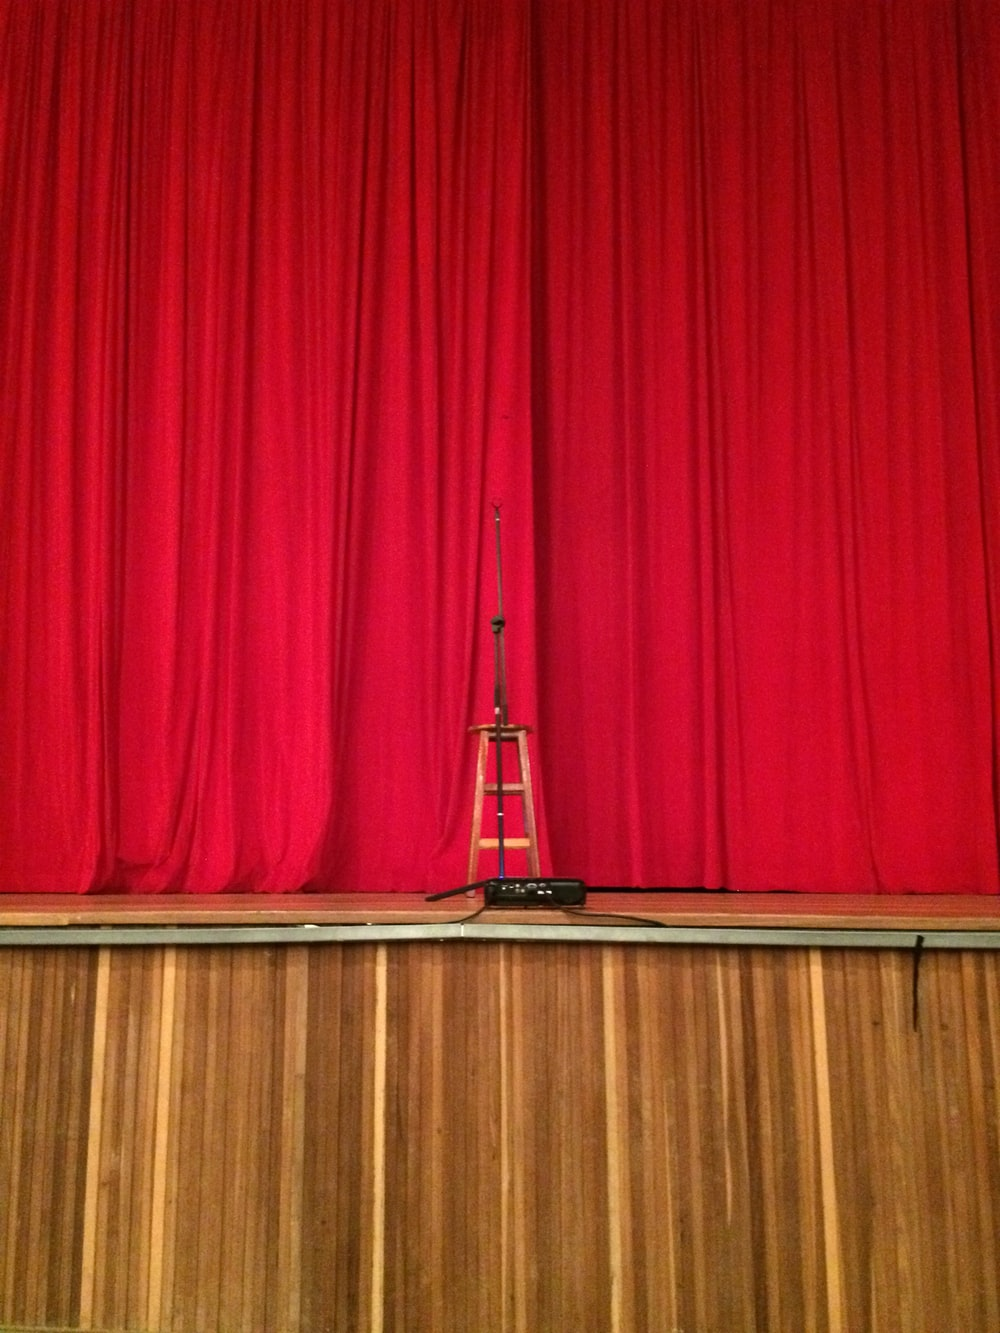 red curtain on brown wooden floor